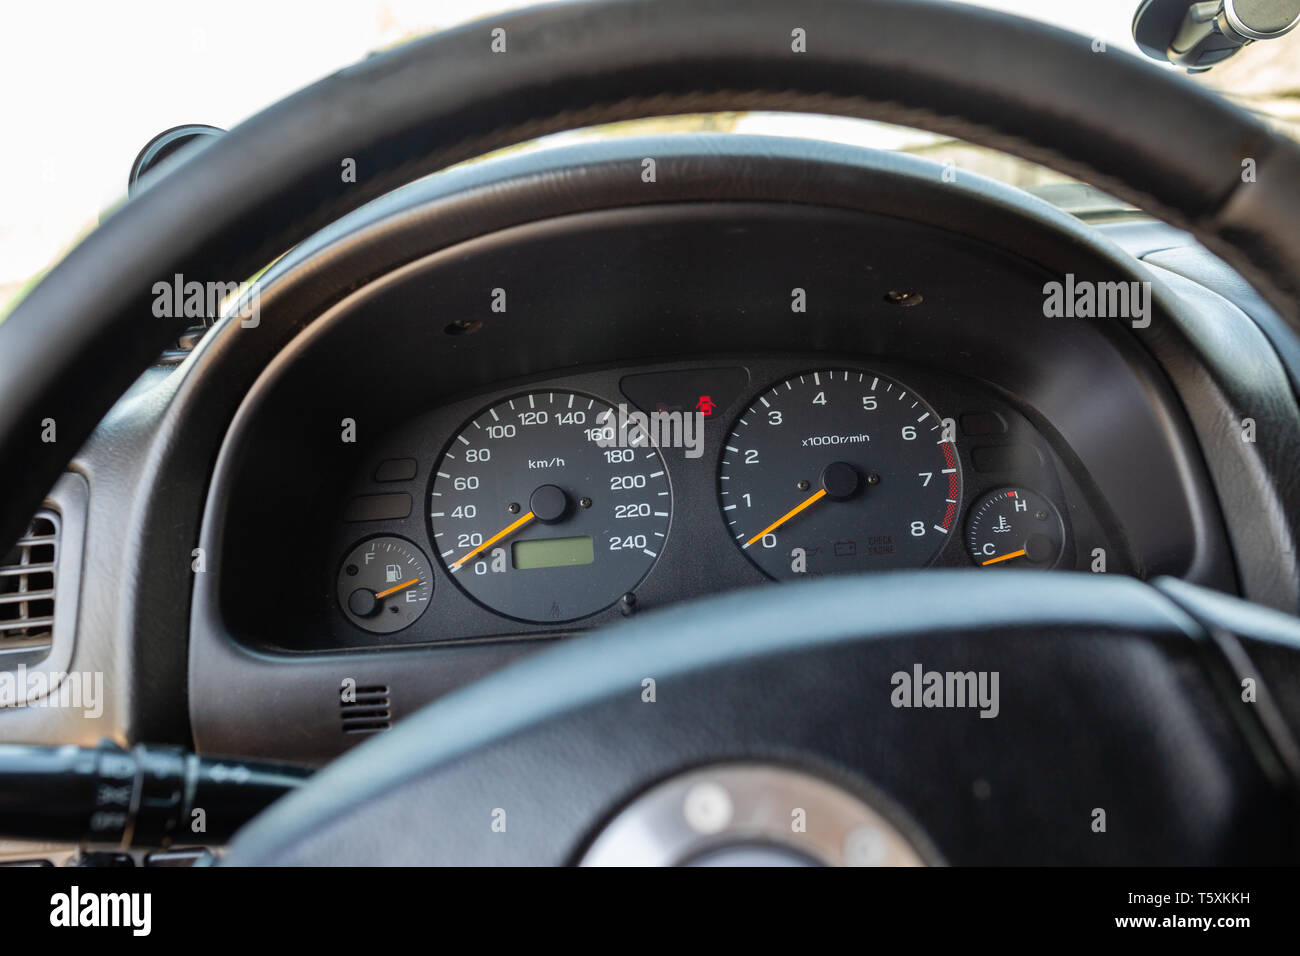 Old Japanese Made Sports Car Dashboard With Speedometer And Other Gauges Stock Photo Alamy